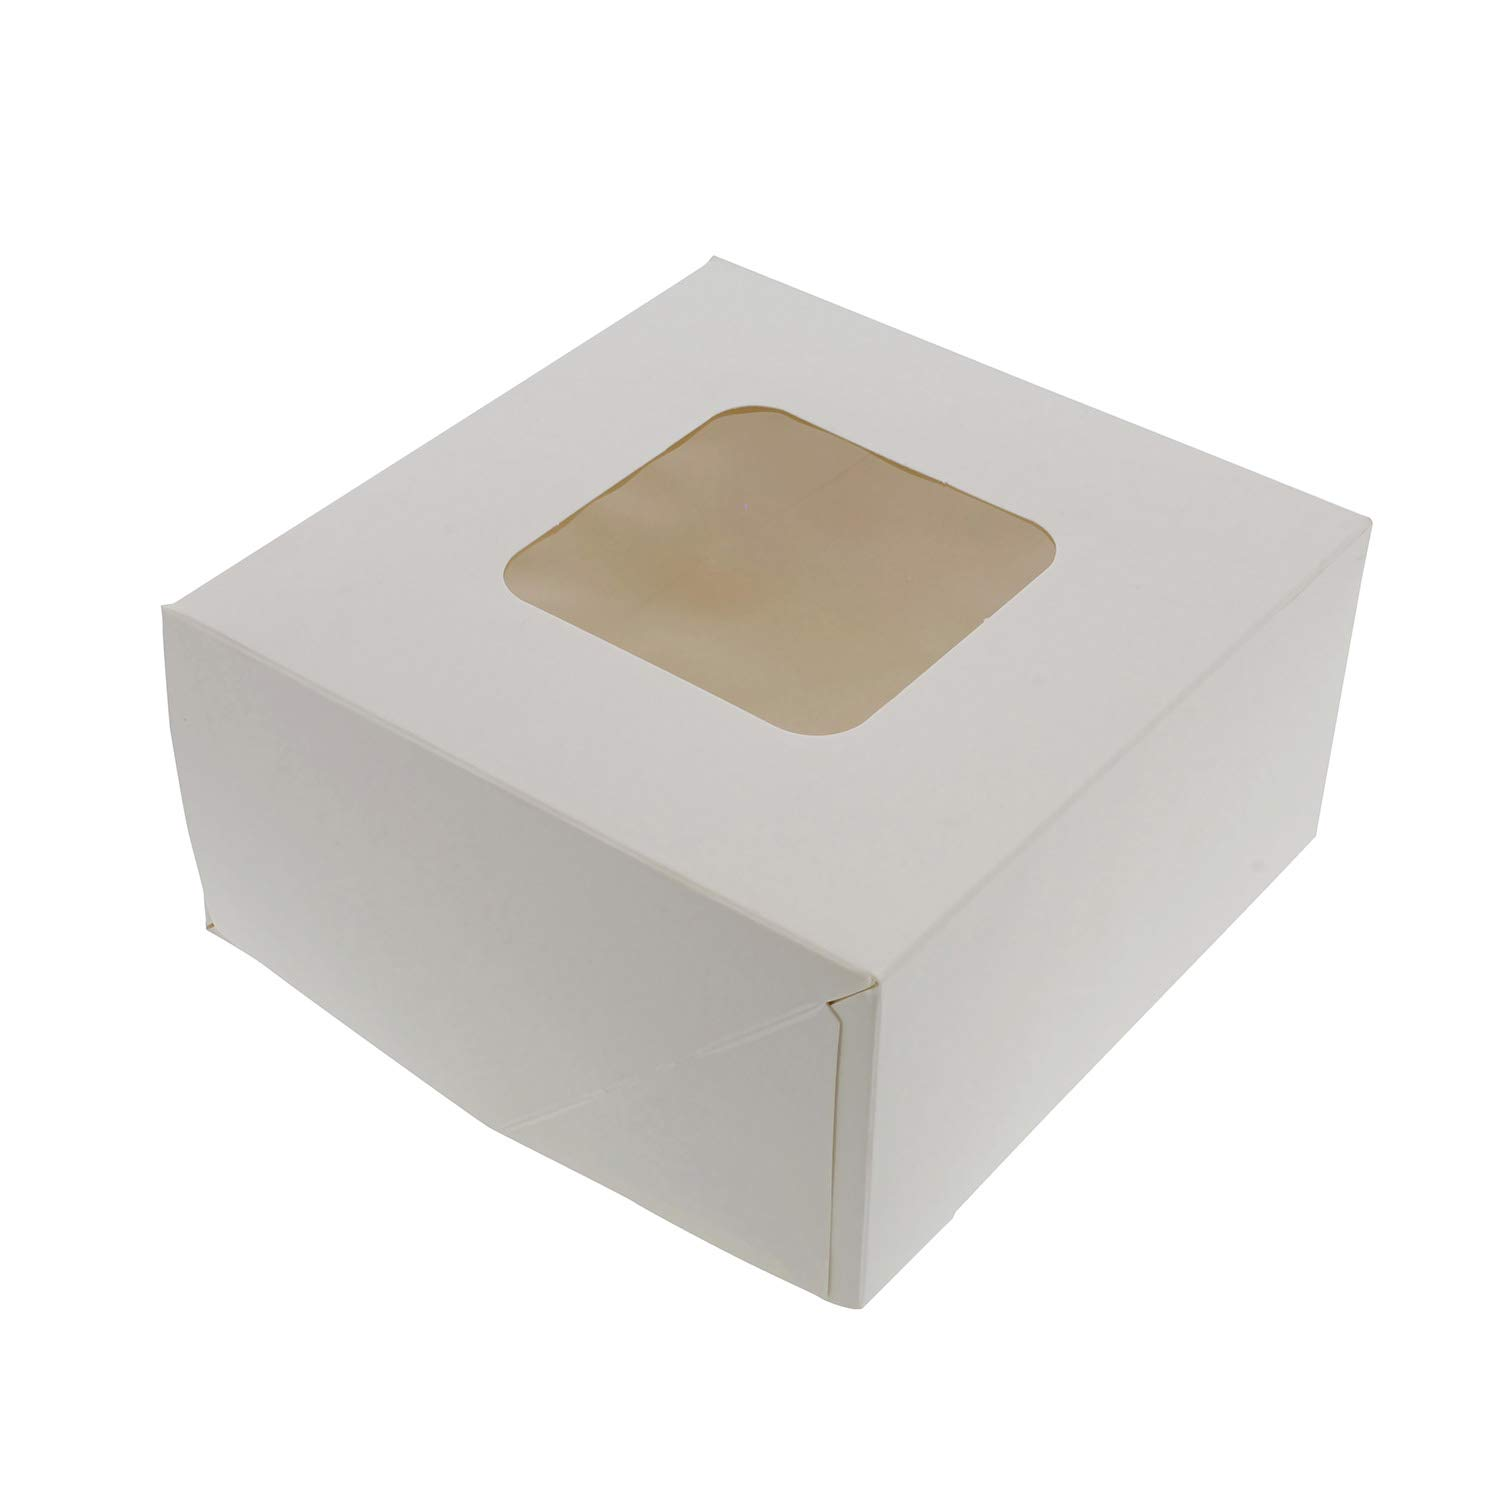 SpecialT White Bakery Boxes with Window, 200pk - 6'' x 6'' Inch Cake Boxes, Party Favor Boxes, Candy Boxes, Dessert Boxes by SpecialT (Image #5)